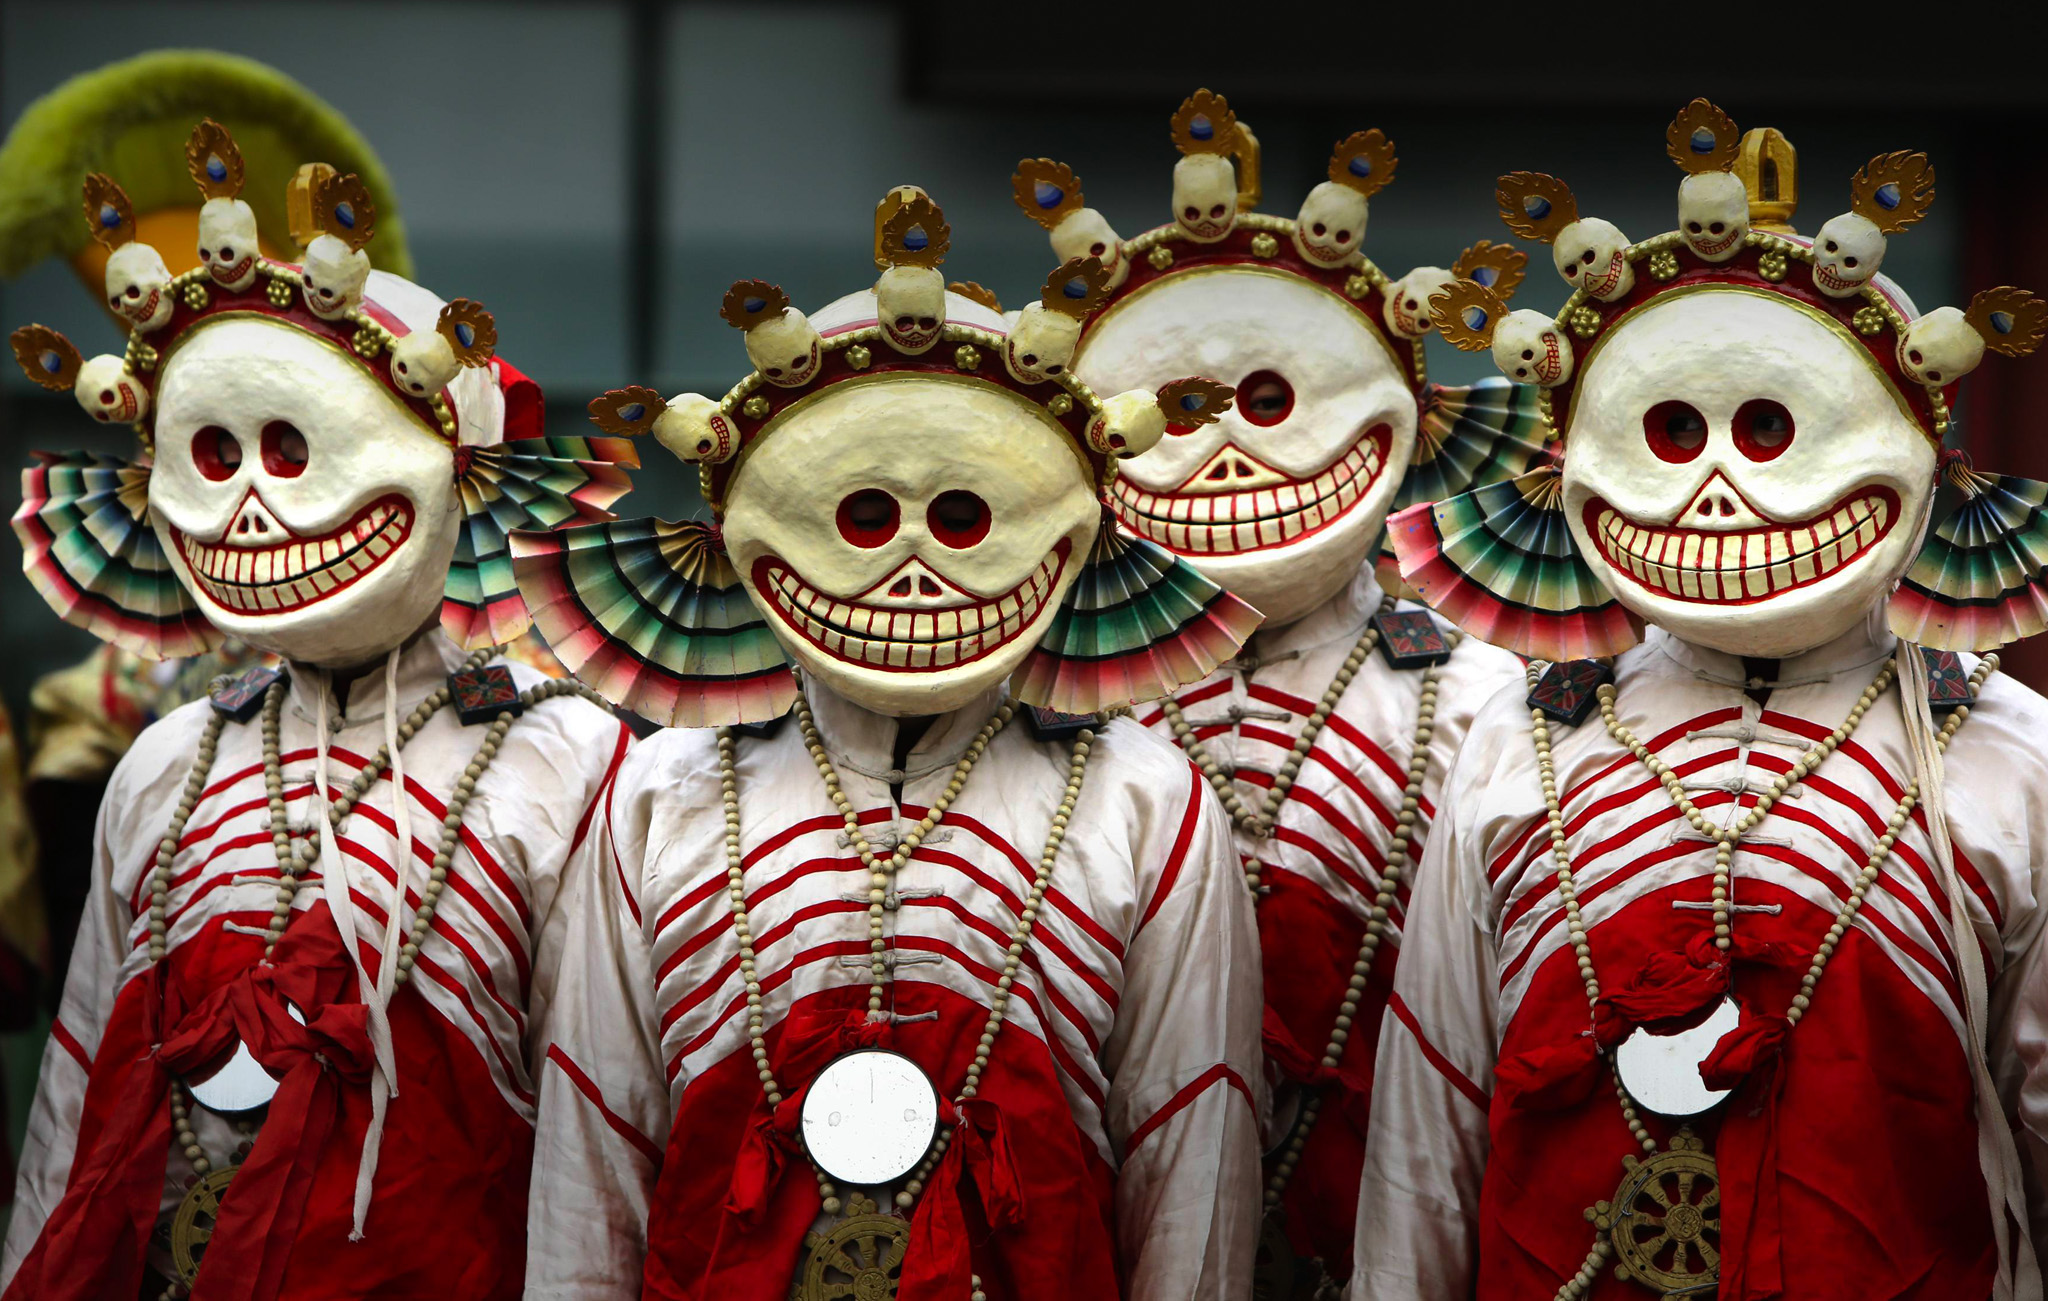 "Monks dressed as Tibetan Buddhist characters attend a religious ceremony, known as ""Da Gui"" or beating ghost, to celebrate the upcoming Tibetan New Year which starts on March 1 at Yonghegong Lama Temple. The ceremony is held annually at the end of the first lunar month with mask dancing to expel ghosts."